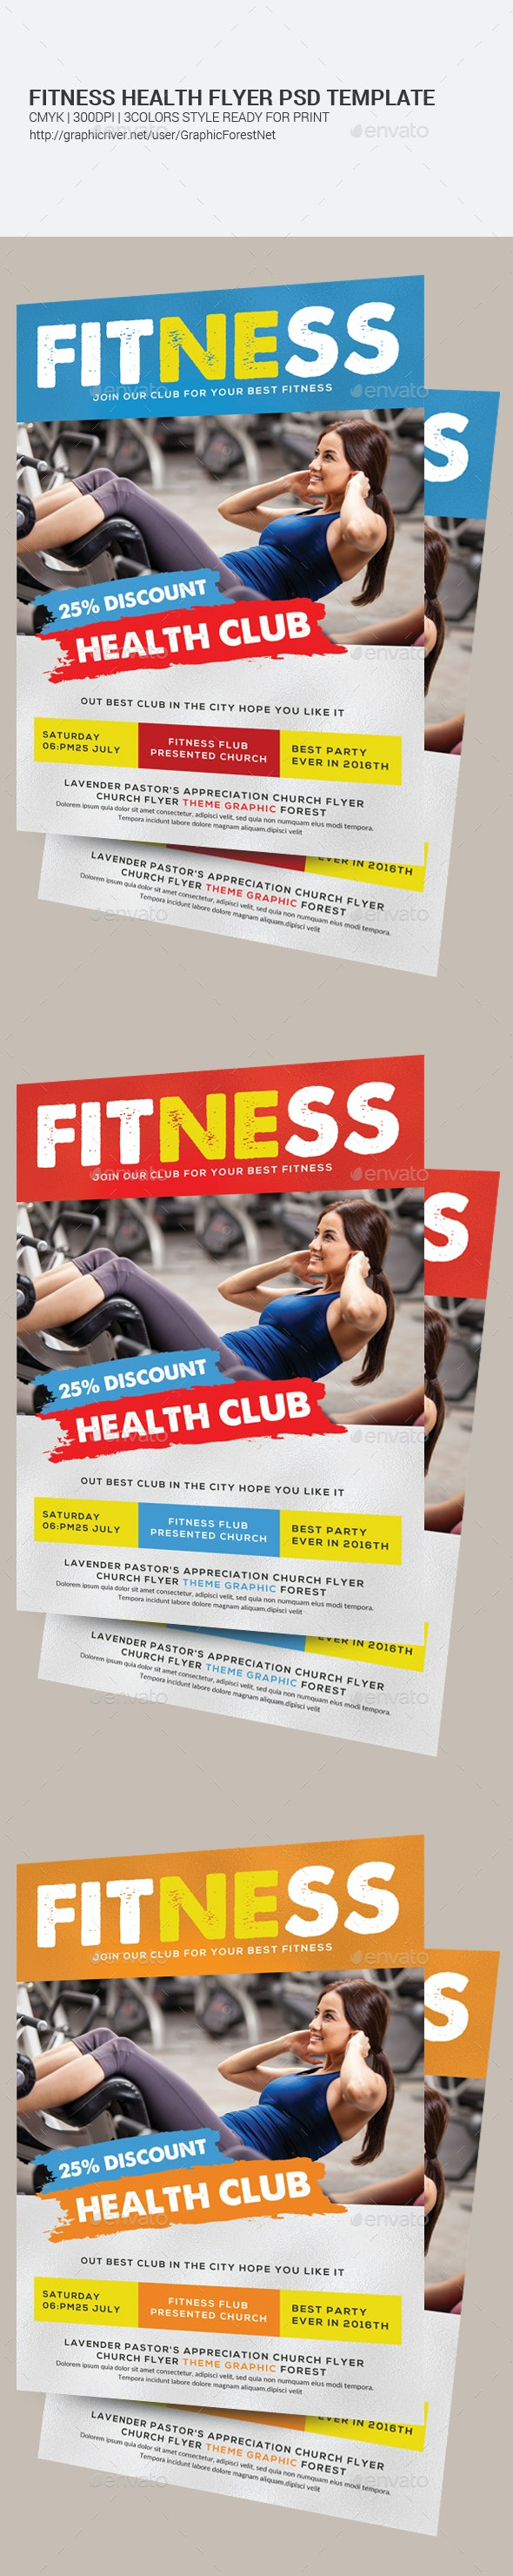 Fitness Flyer Template  - Corporate Flyers